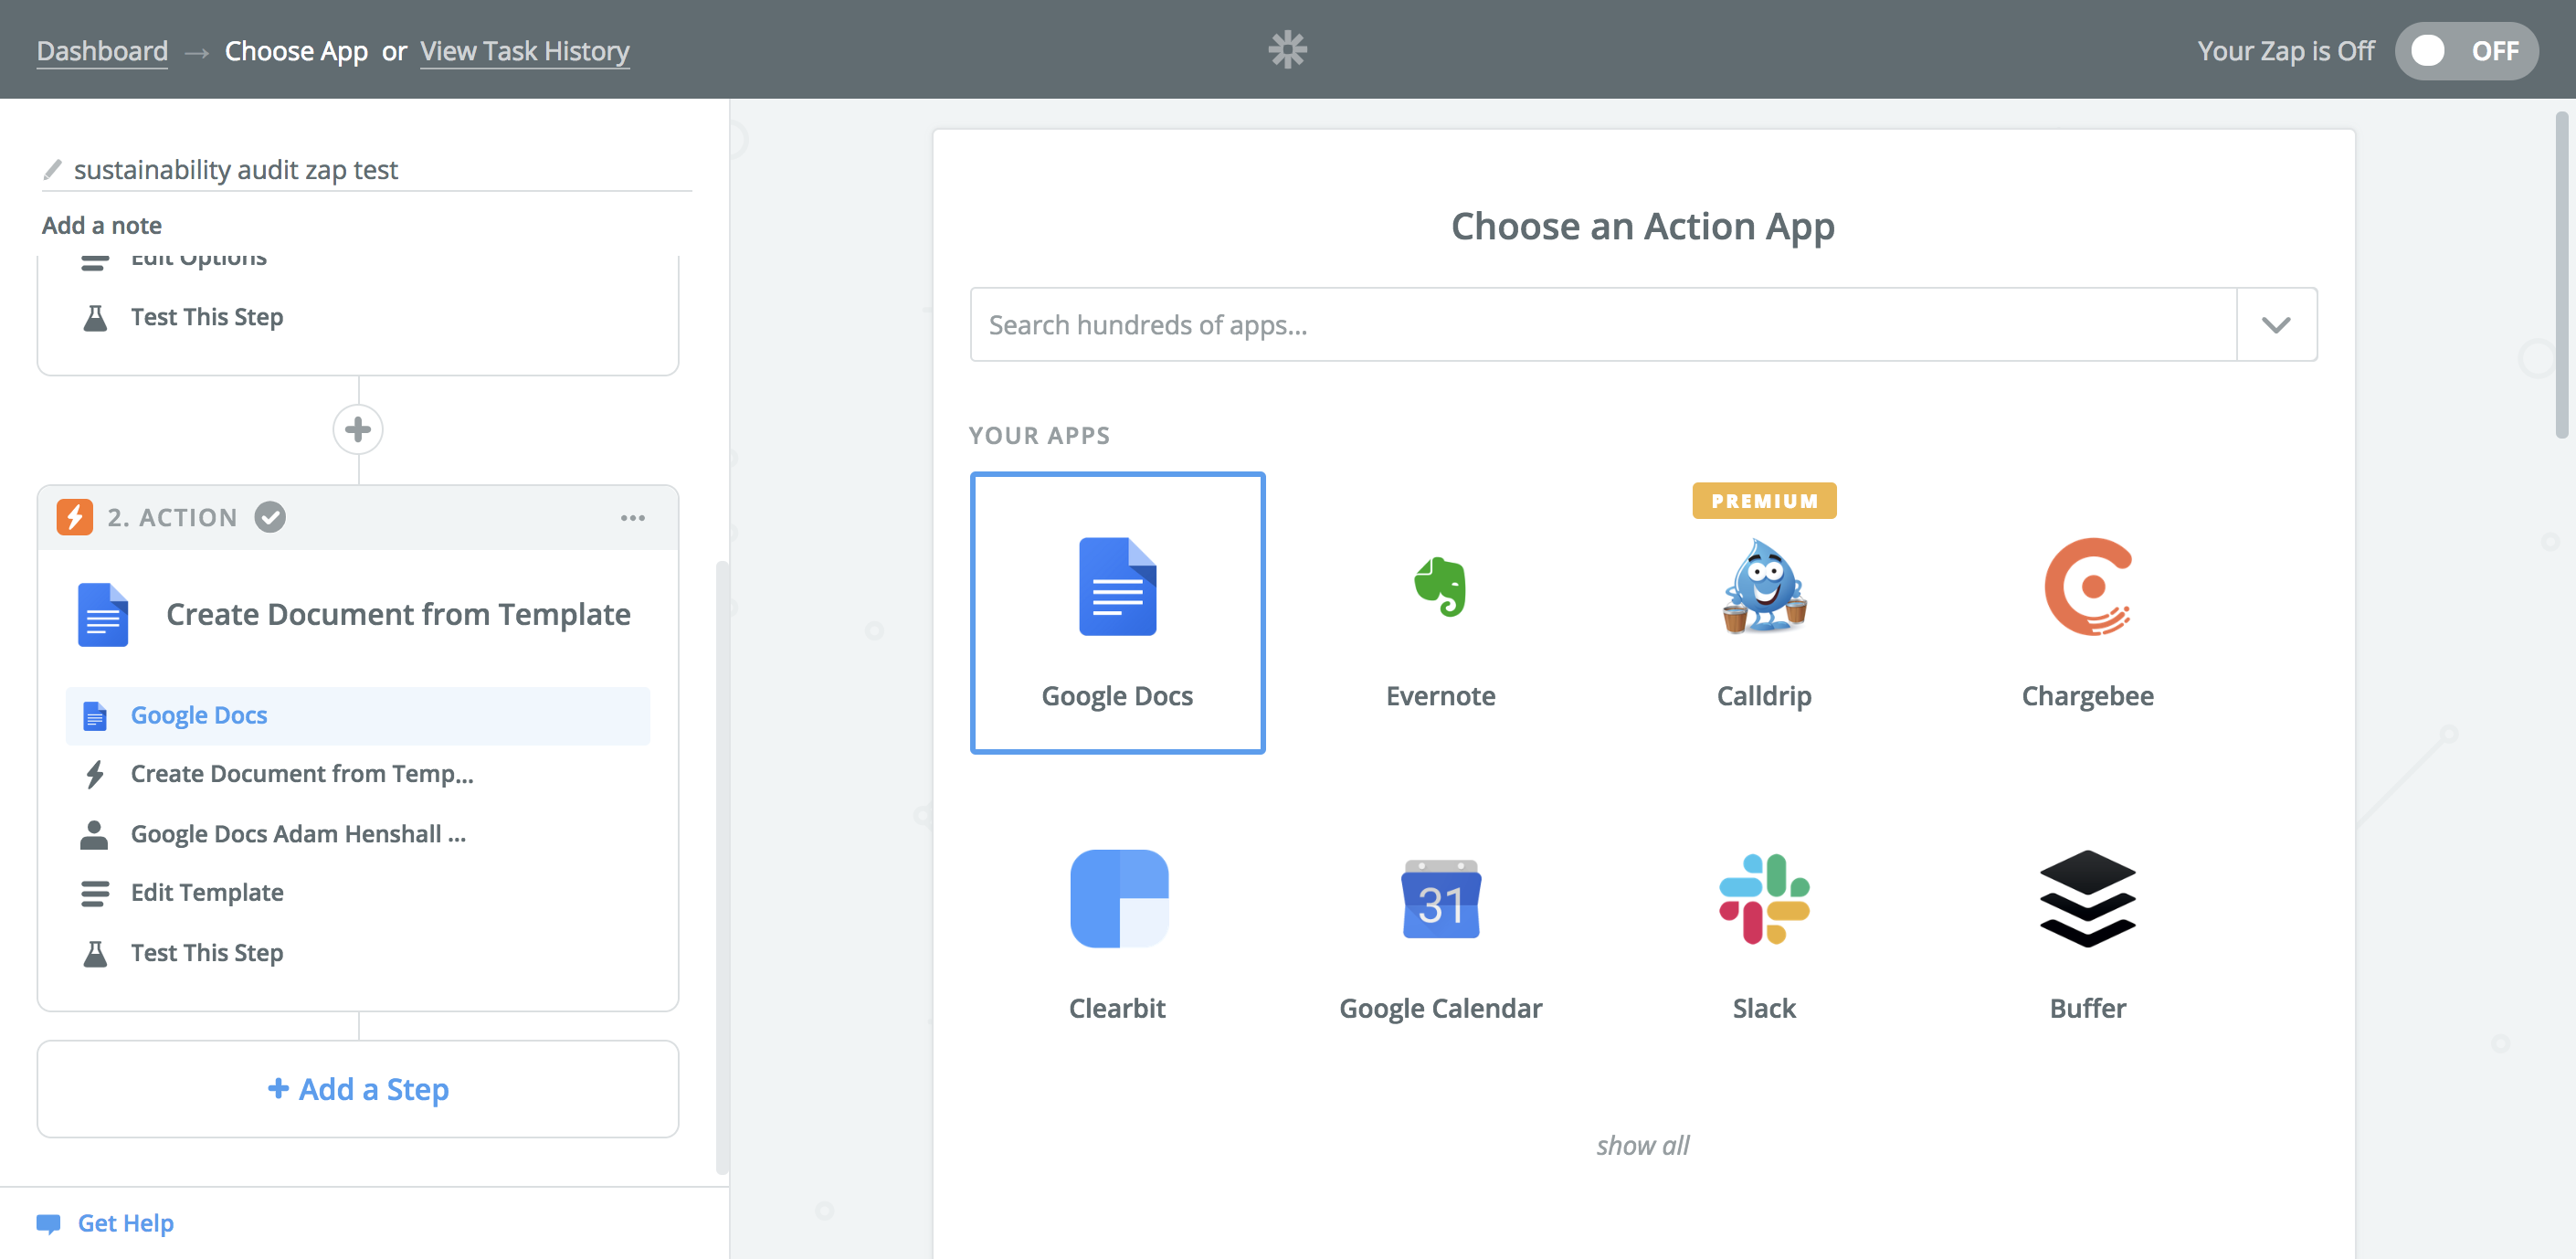 Choose an appropriate action app. The Hotel Sustainability Audit report is to export as a new google document, and so Google Documents is our action application.